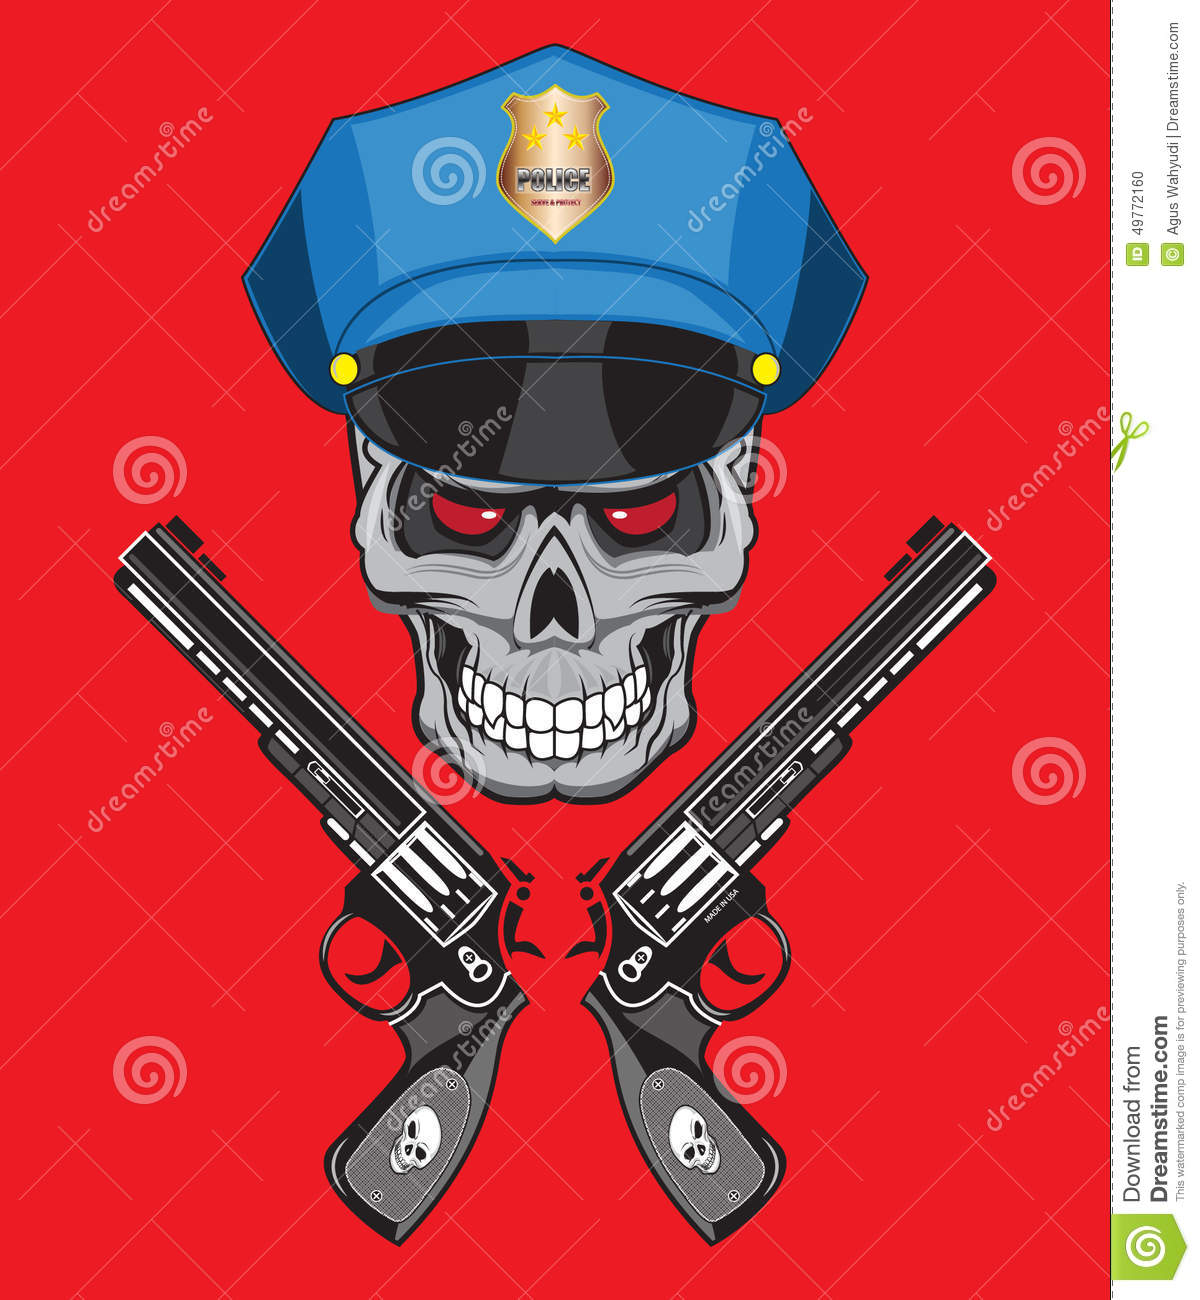 Skull Police Illustration Isolated For Tattoo Or T Shirt